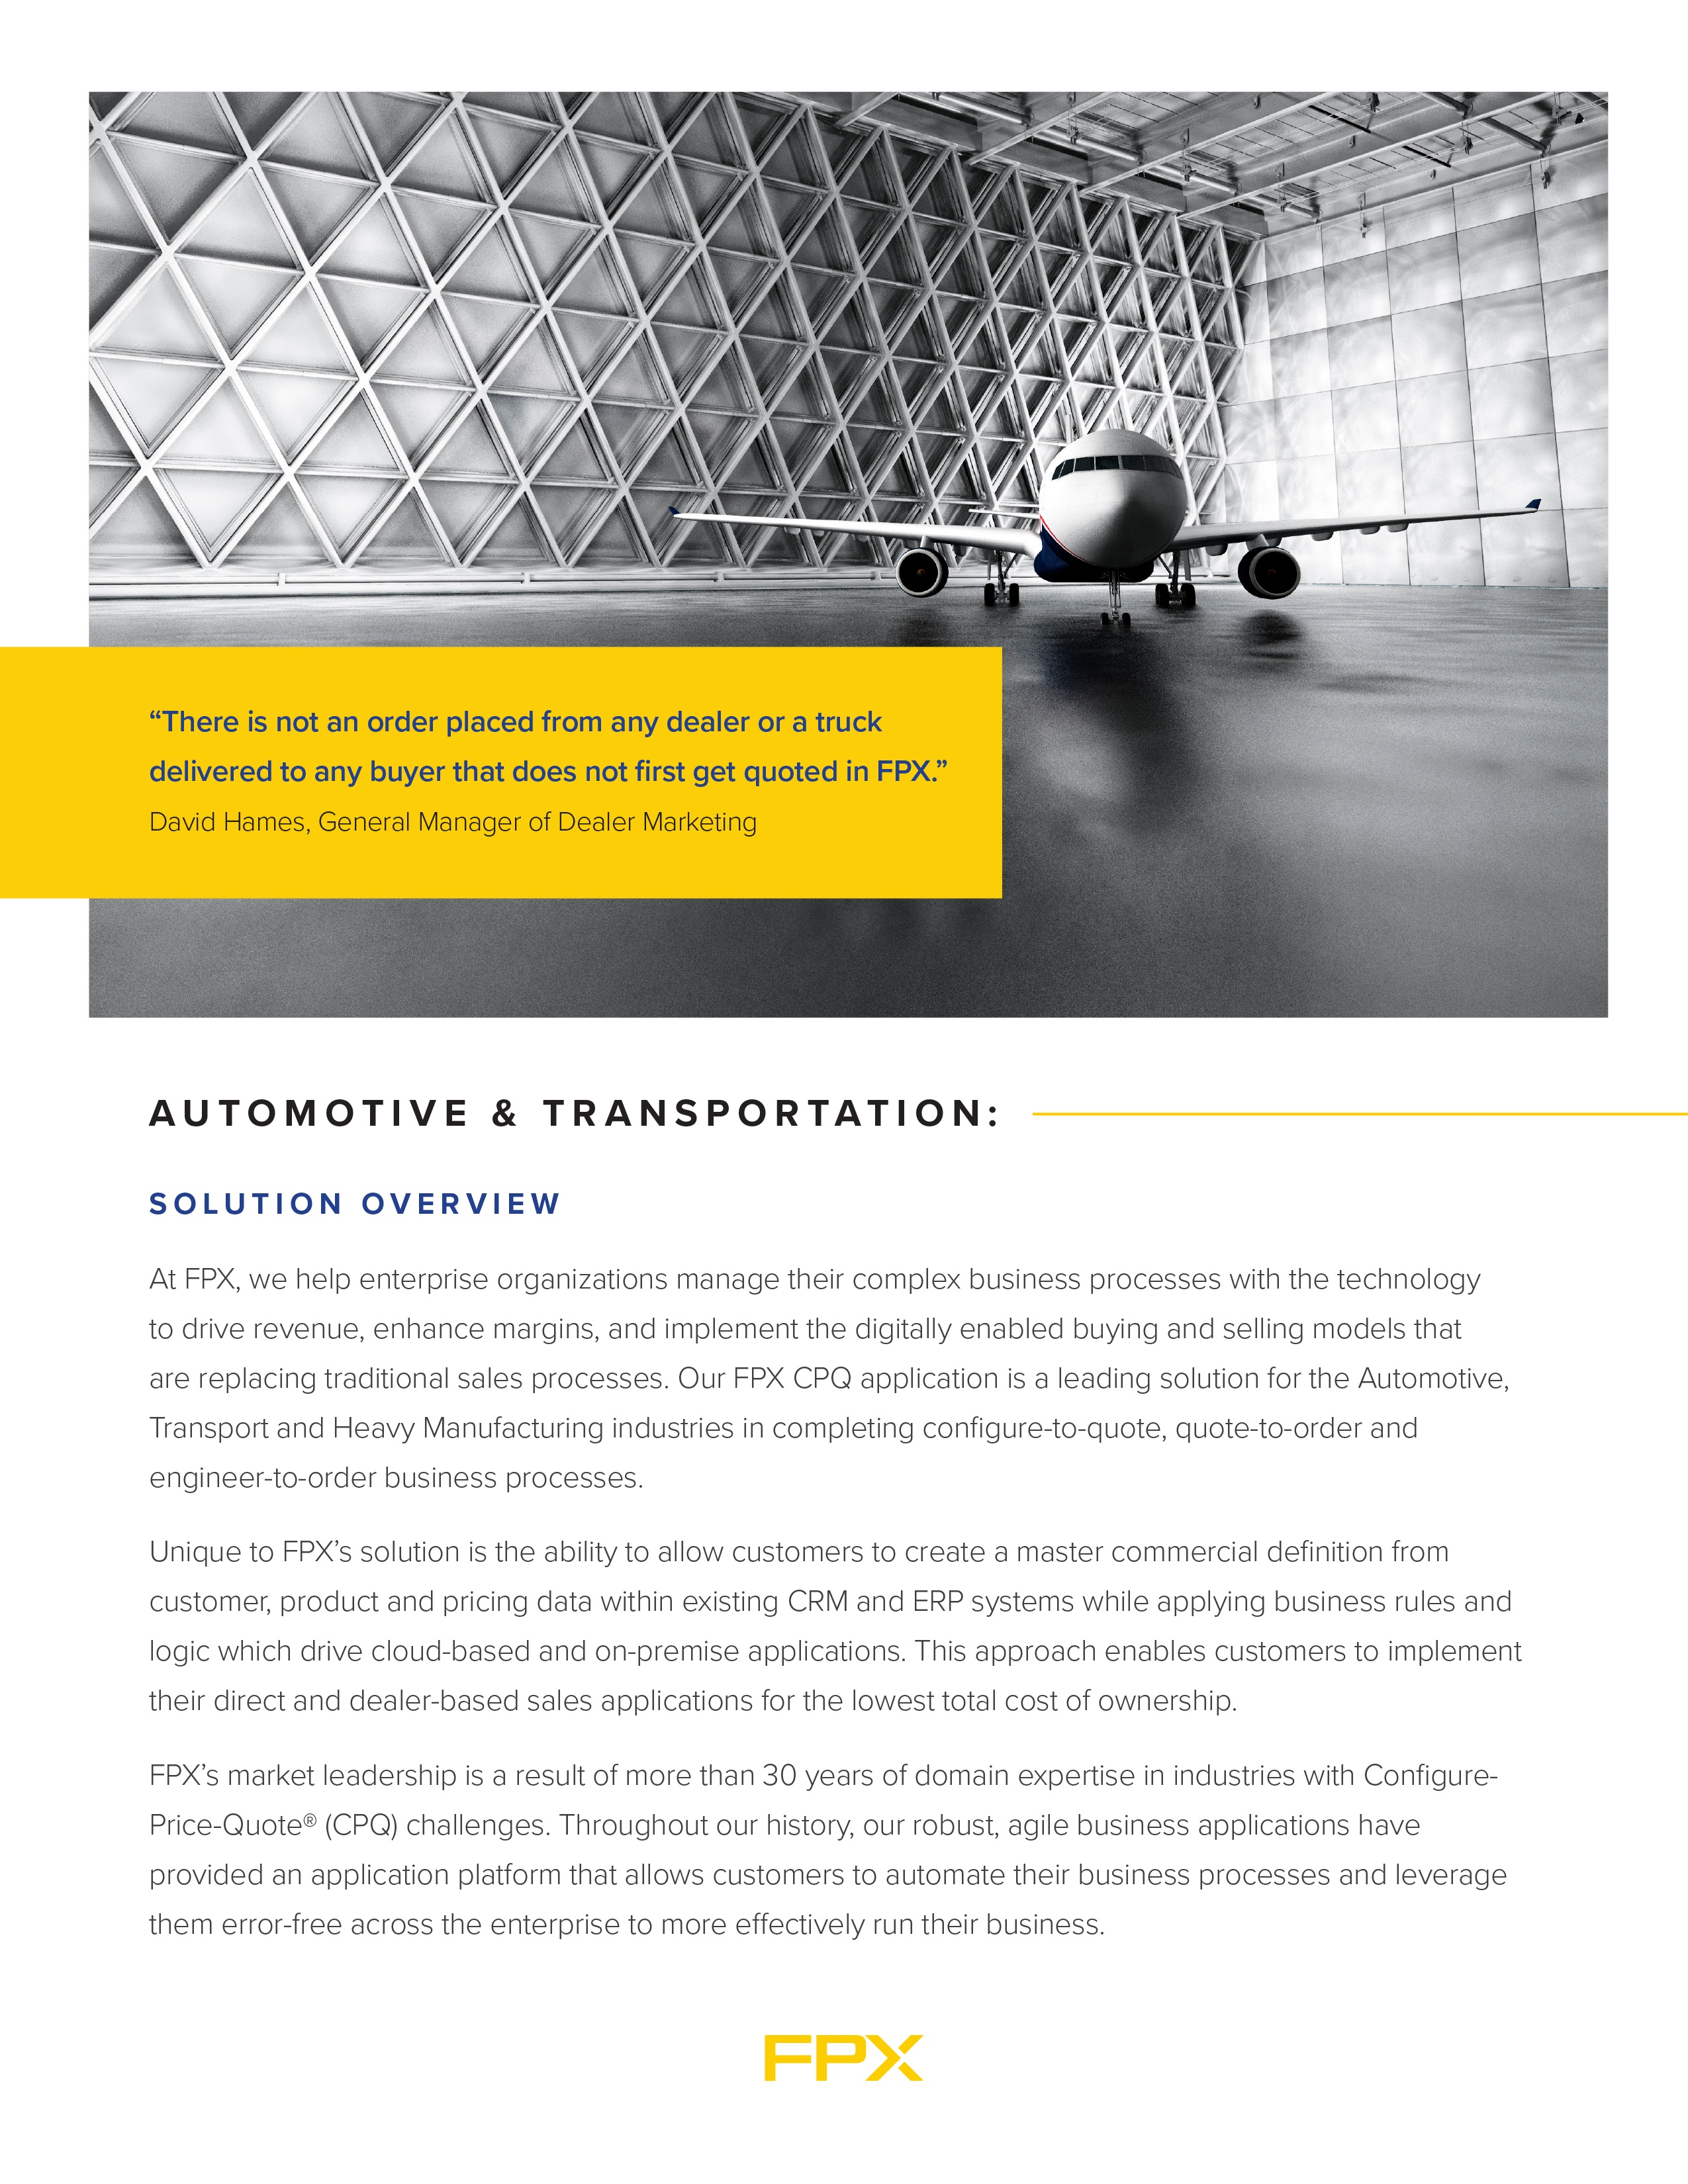 Download the CPQ for Auto and Transportation data sheet